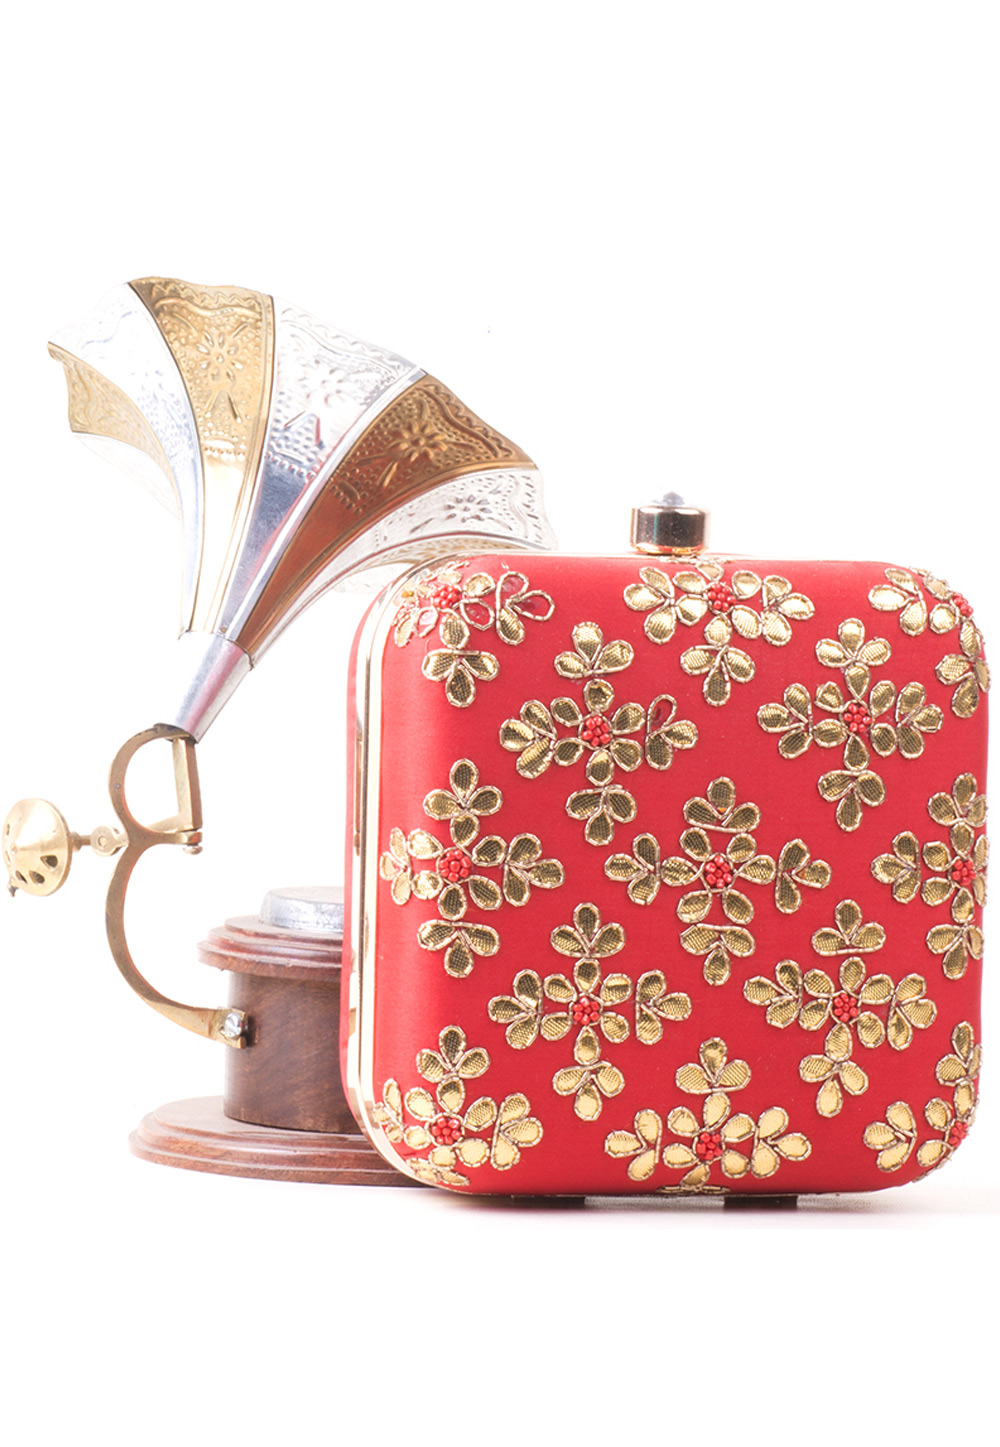 Red Synthetic Embroidered Clutch 172783